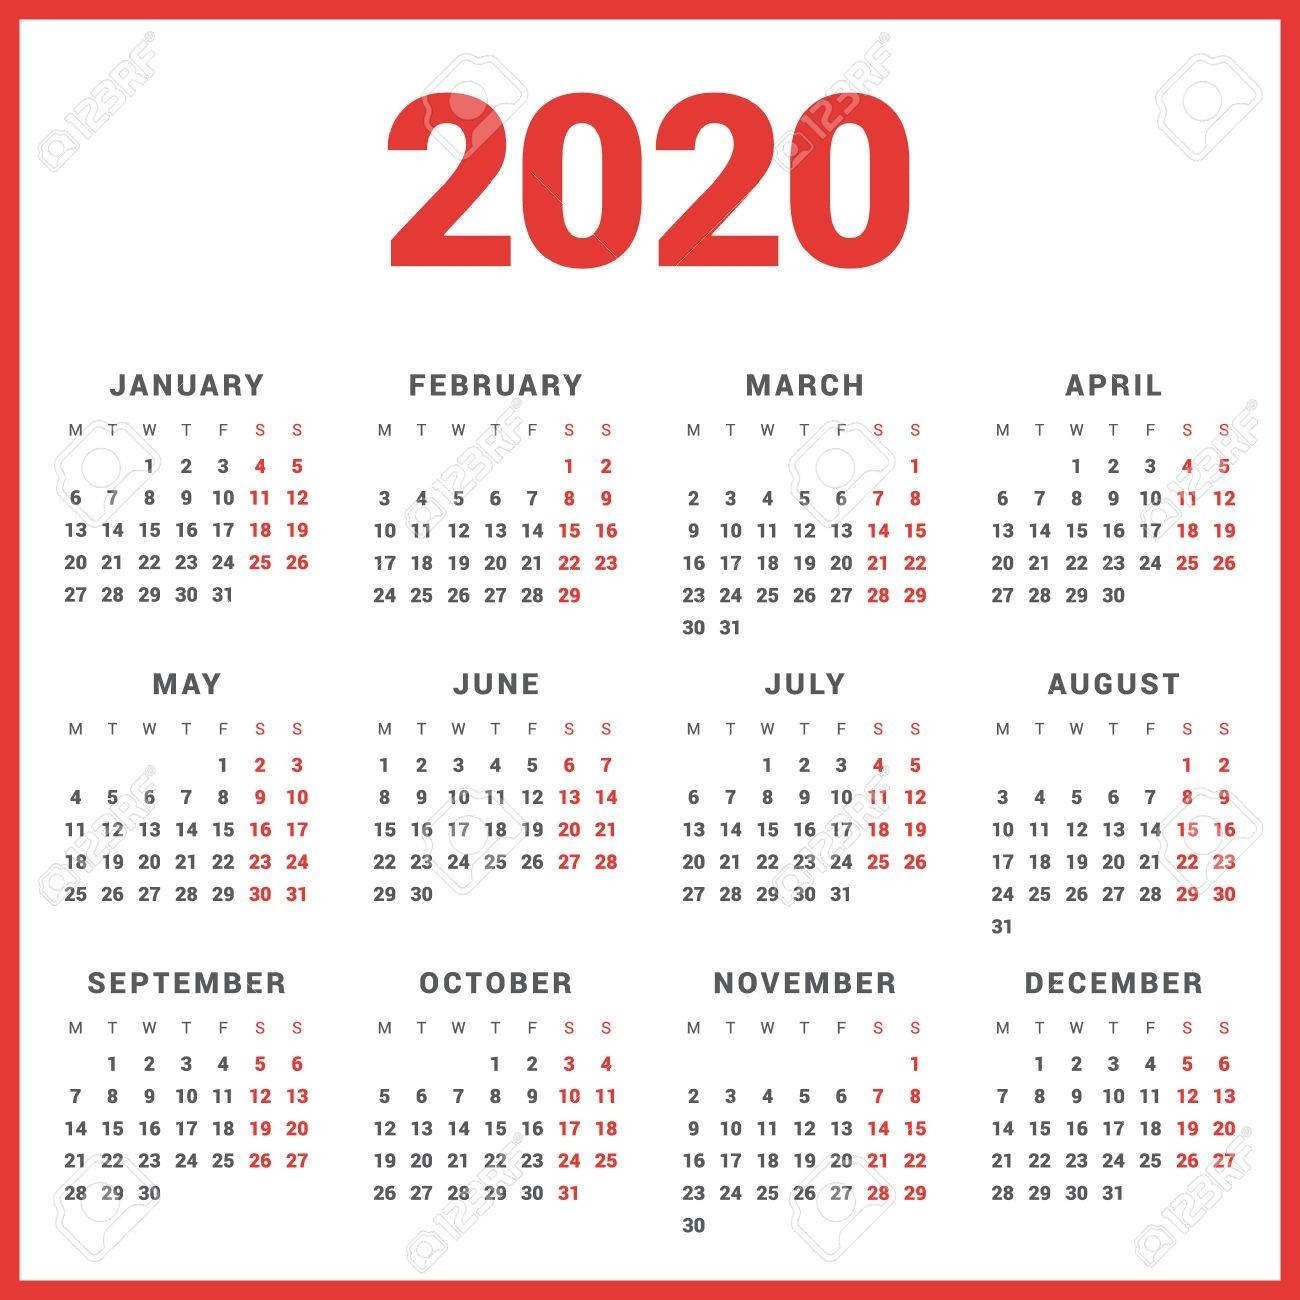 Monday Start Calendar 2020 - Colona.rsd7 pertaining to 2020 Calendar Starting On Moday